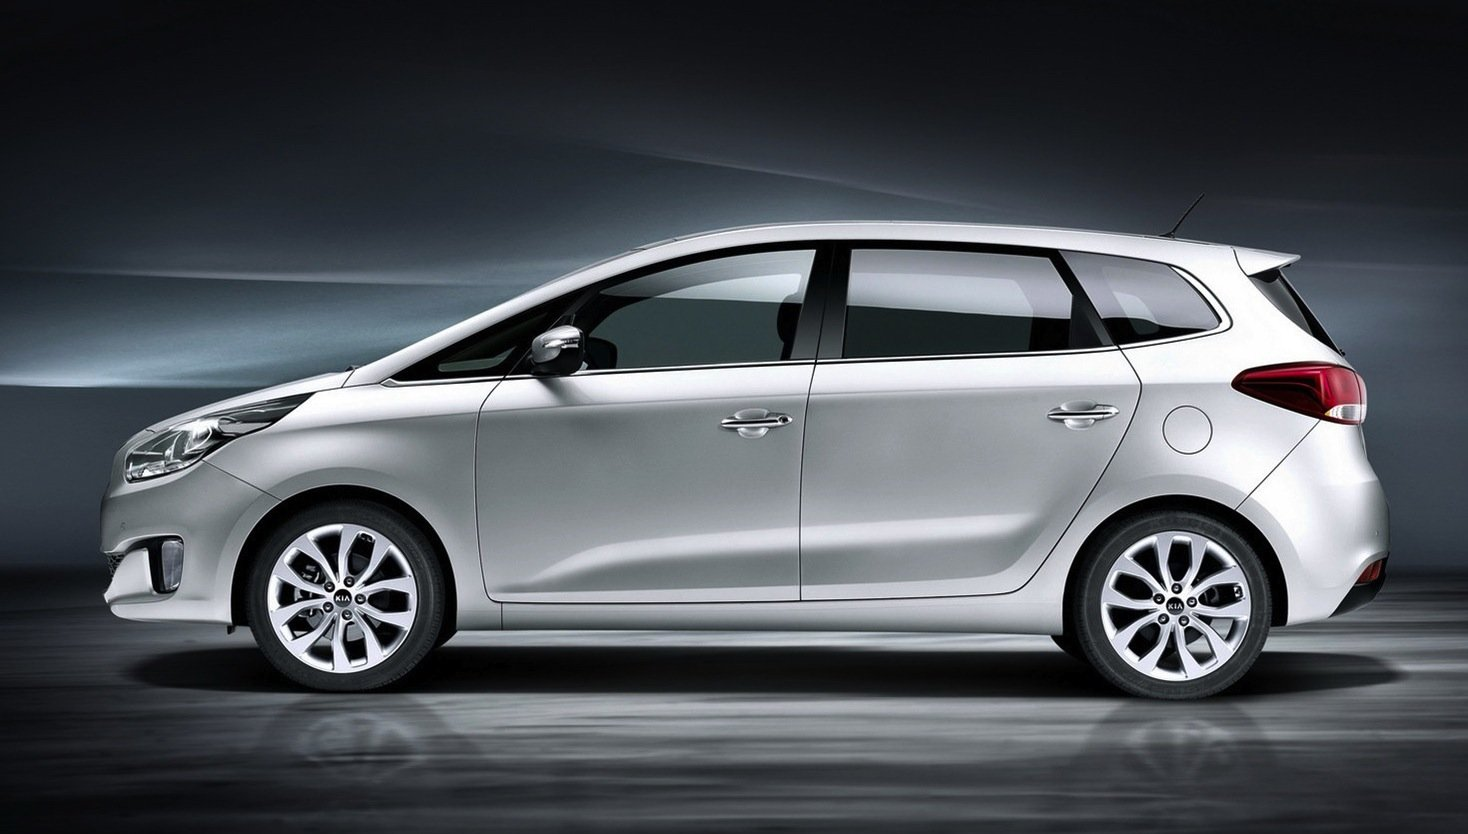 Latest Kia Cars 2013 Models In Canada Picture Shoots Cars Free Download